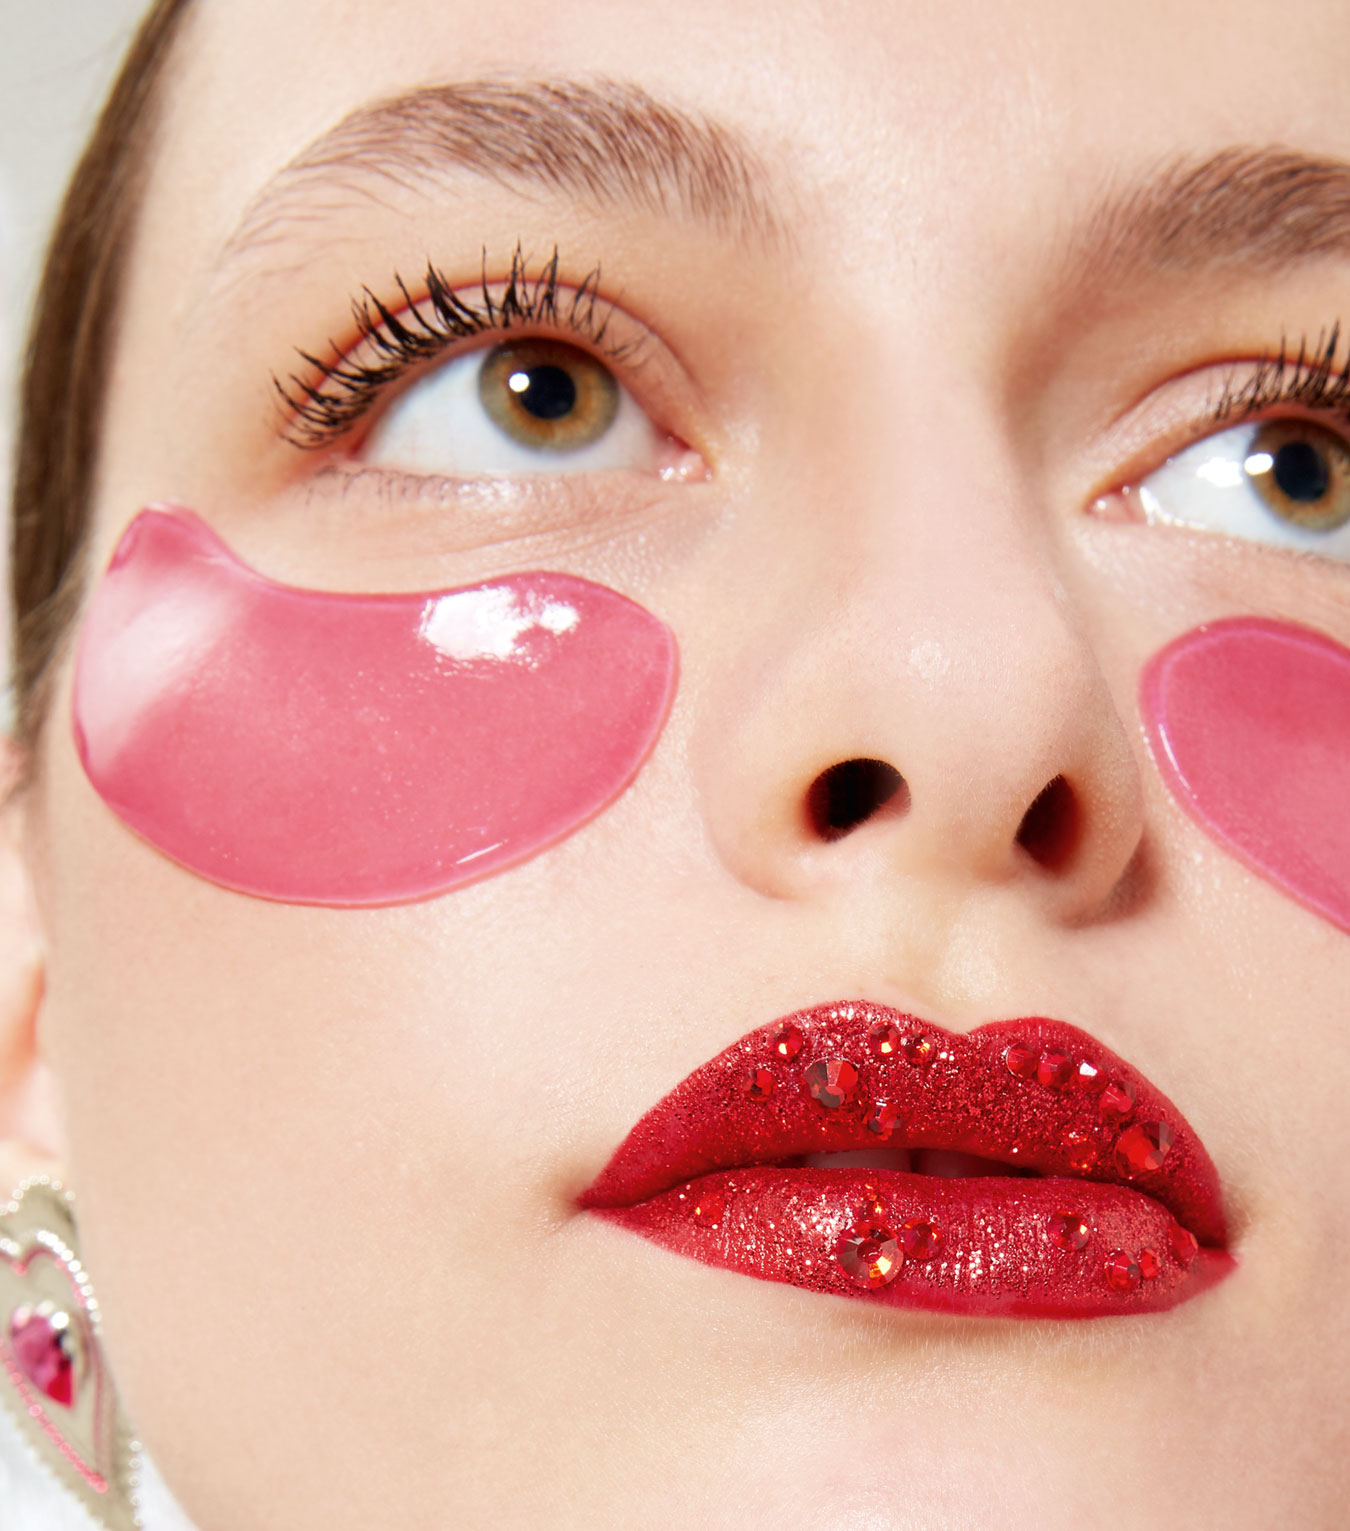 frau mit roten lippen und eye pads woman with red lips and eye pads klarna app